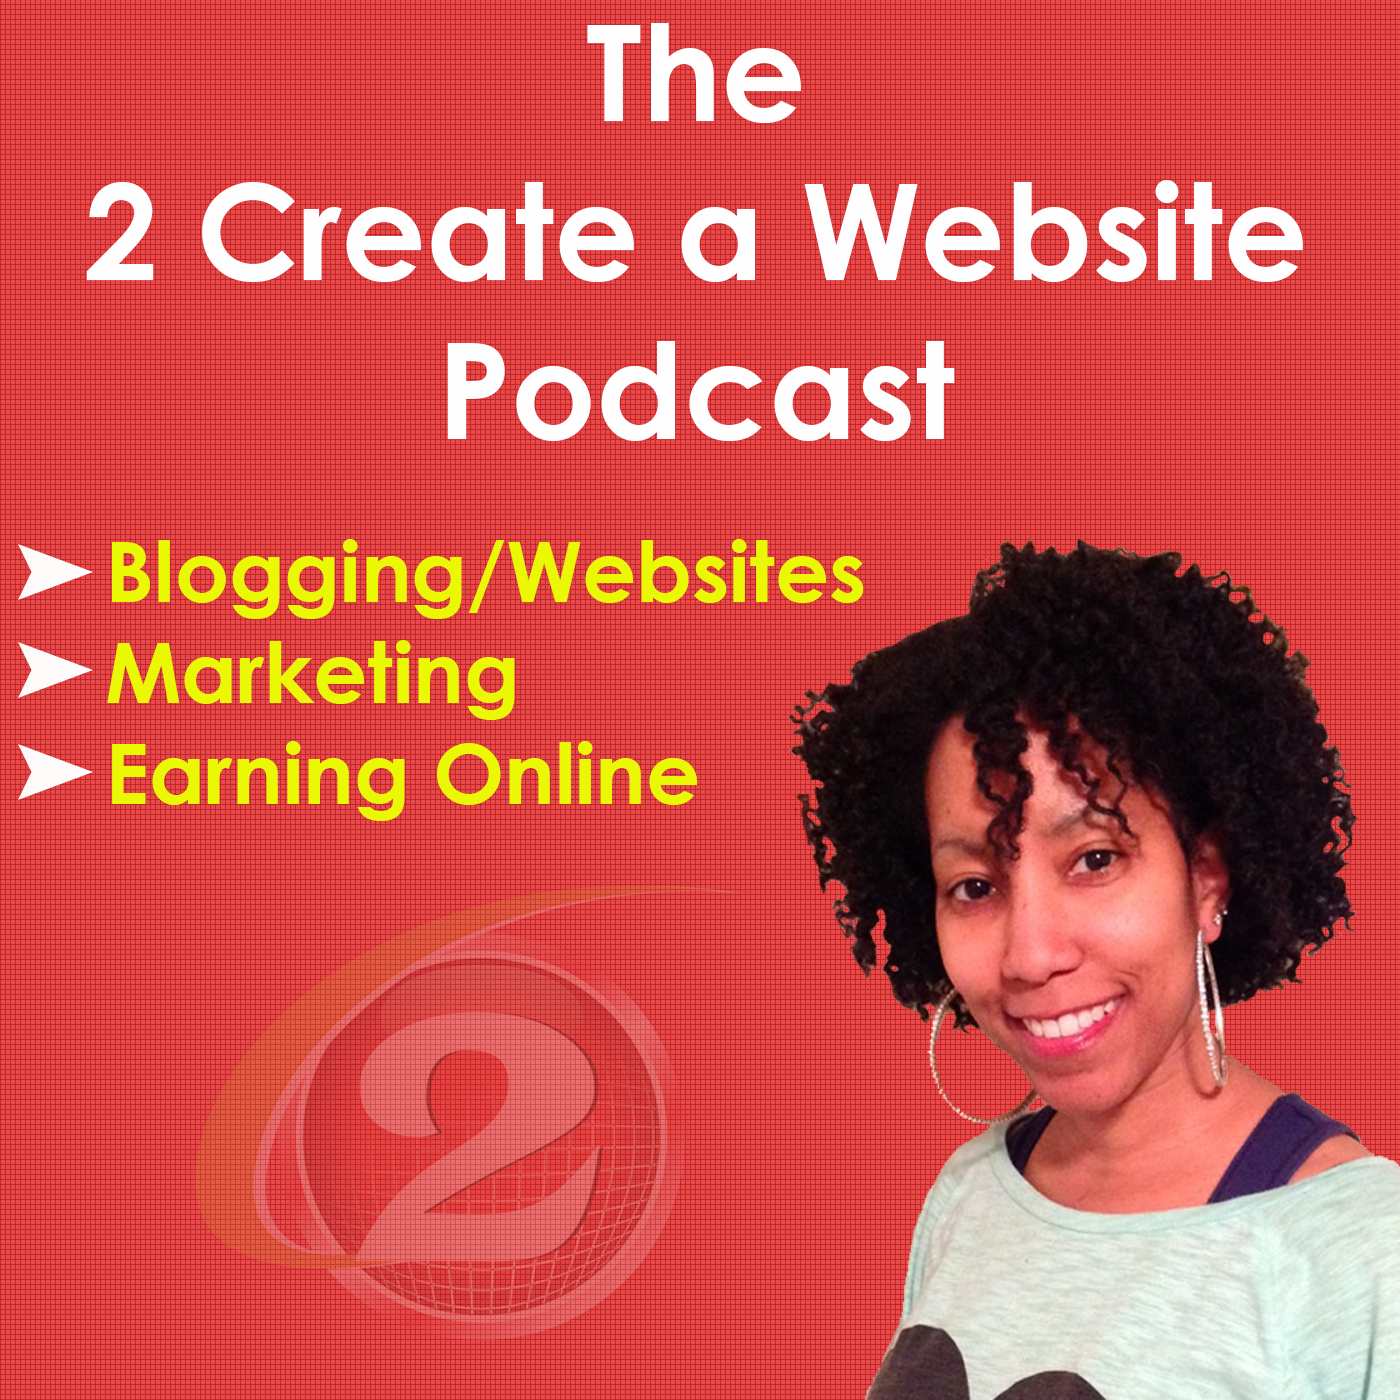 The 2 Create a Website Podcast - Internet Marketing | Blogging | Earning Online | WordPress